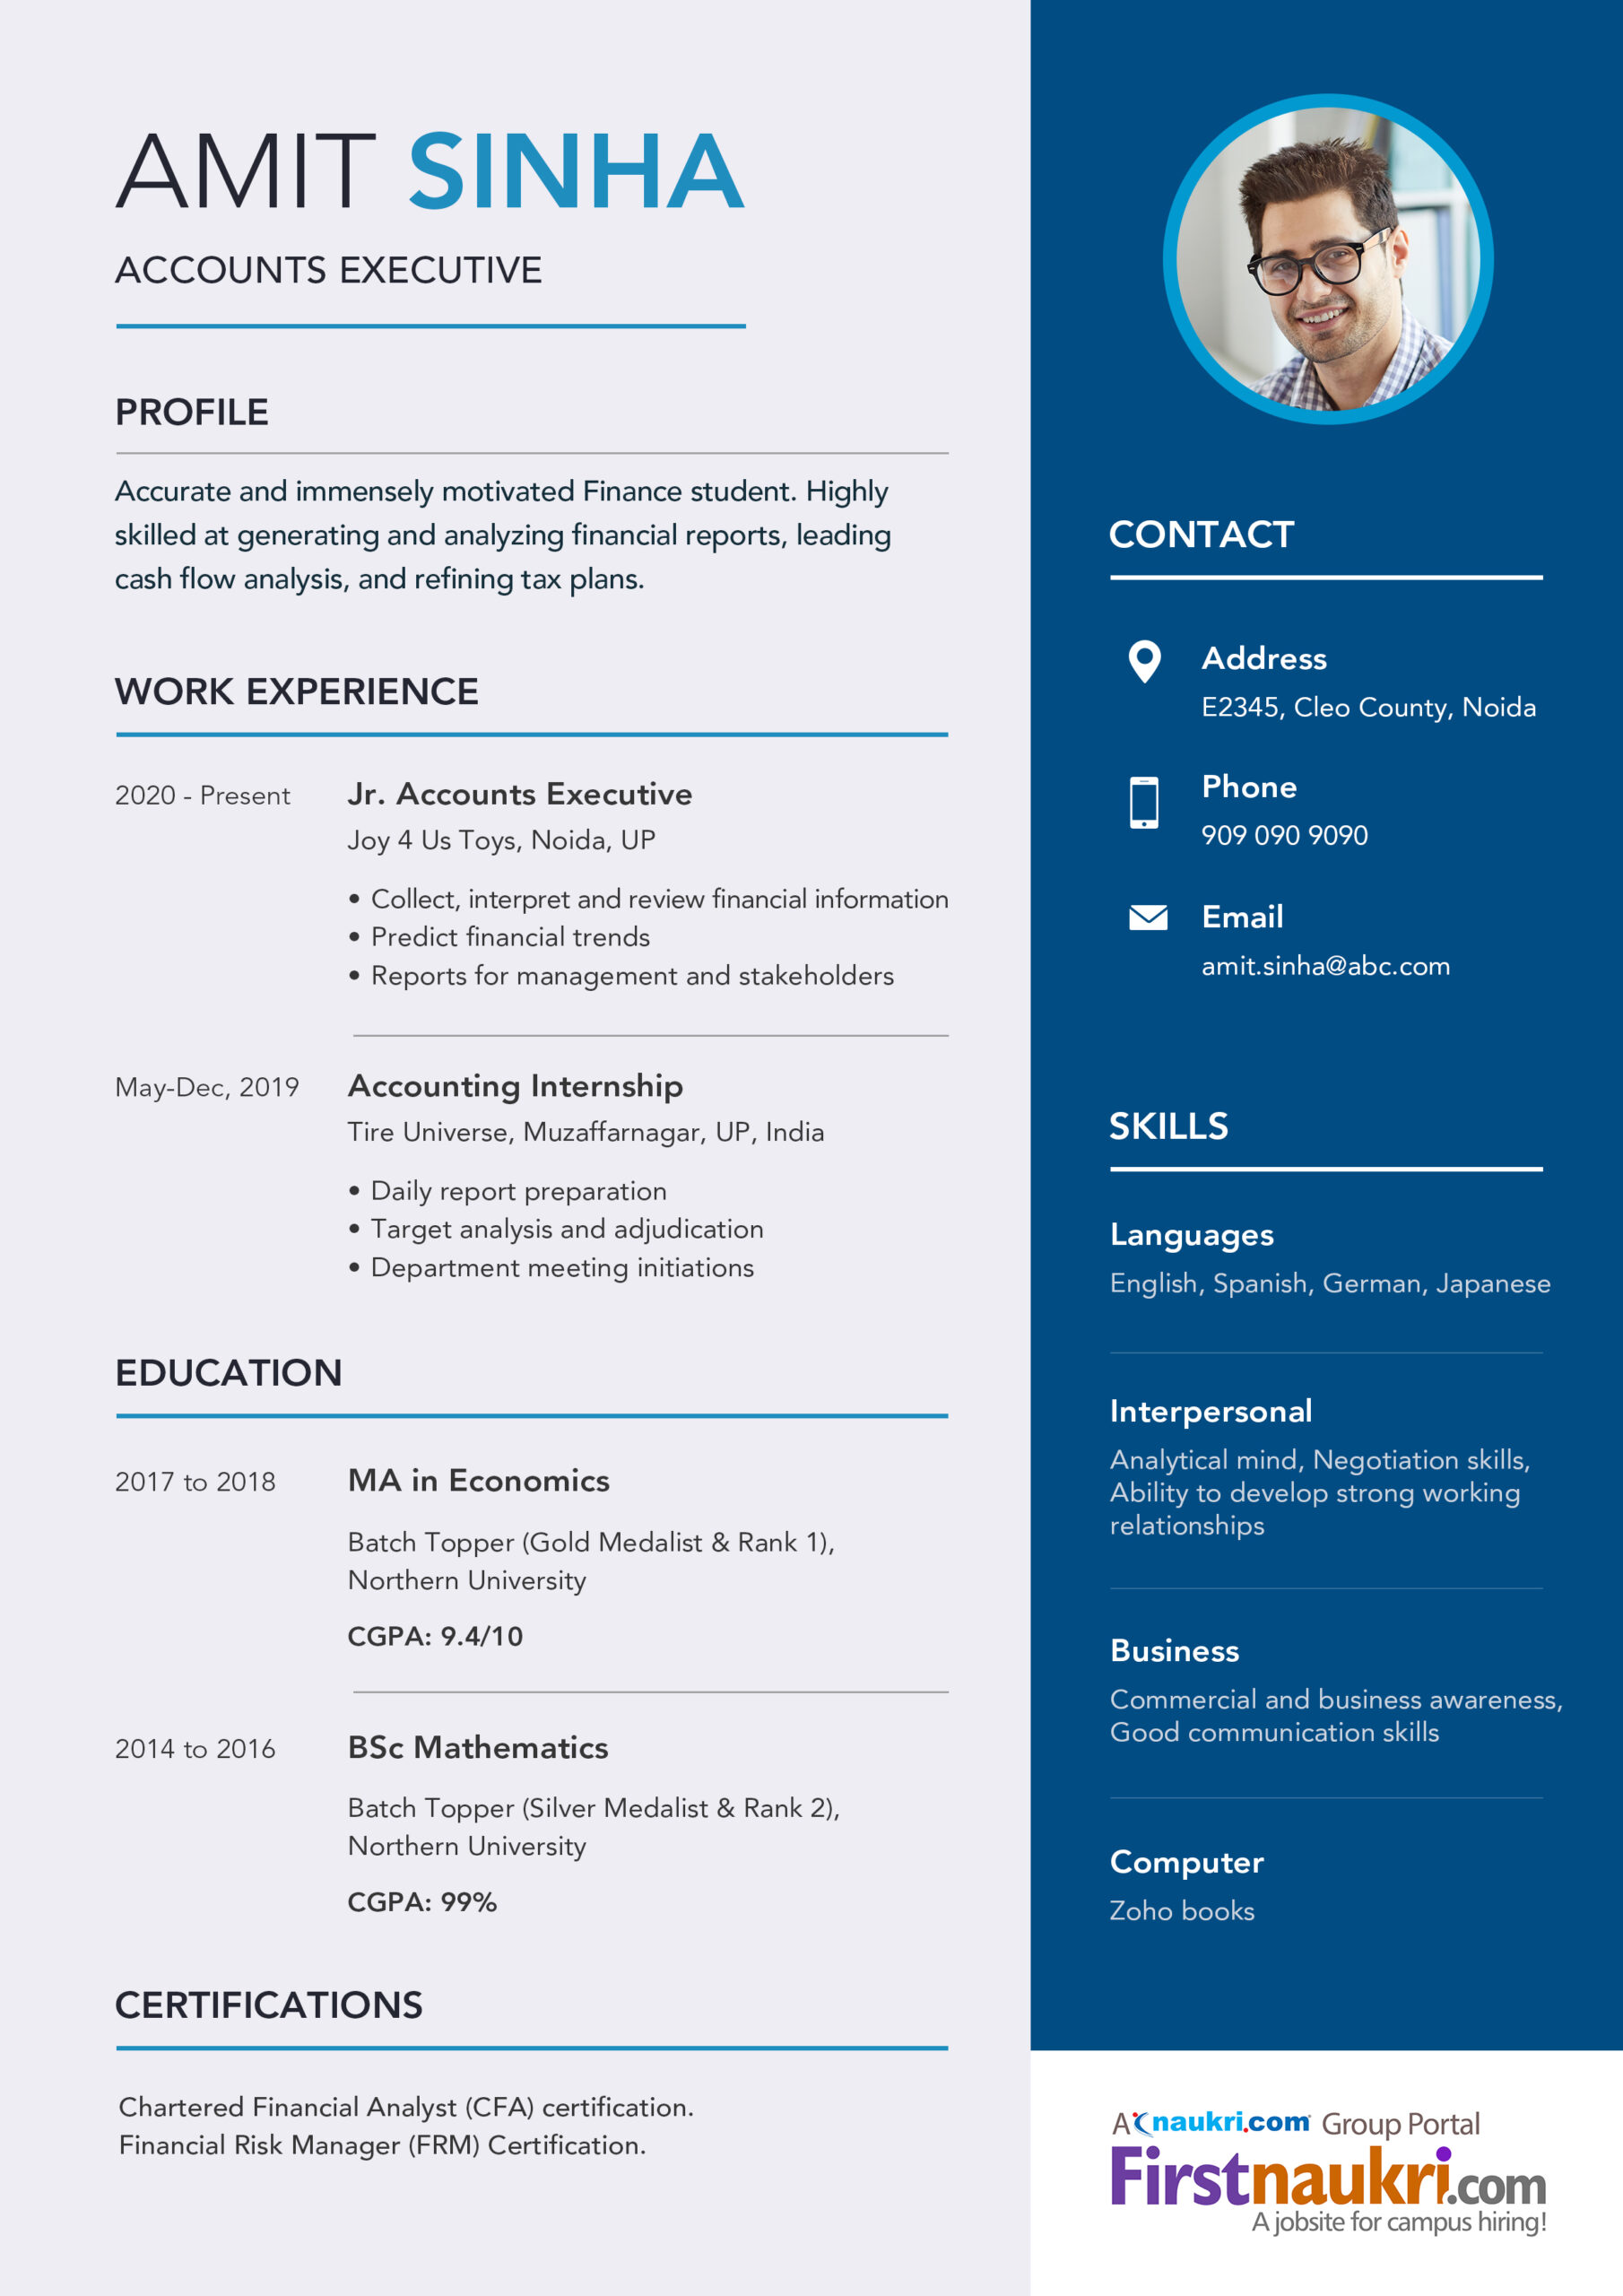 accounting resume sample career guidance latest format for freshers design update job Resume Latest Resume Format 2020 For Freshers